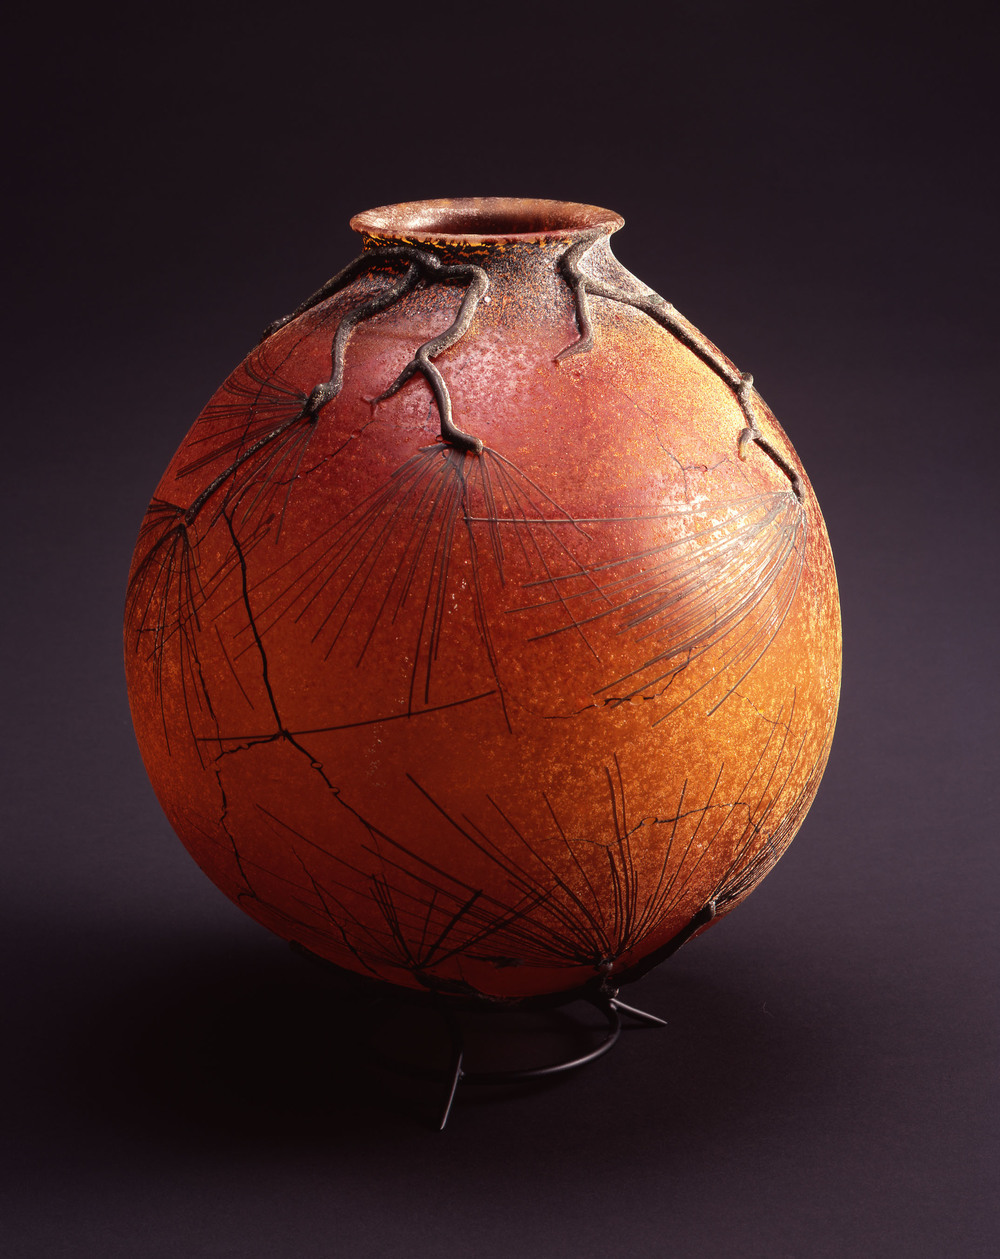 William Morris,  Globe Vessel with Ponderosa Pine Boughs  (2004, glass, 14 1/8 x 12 x 12 inches), WM.41